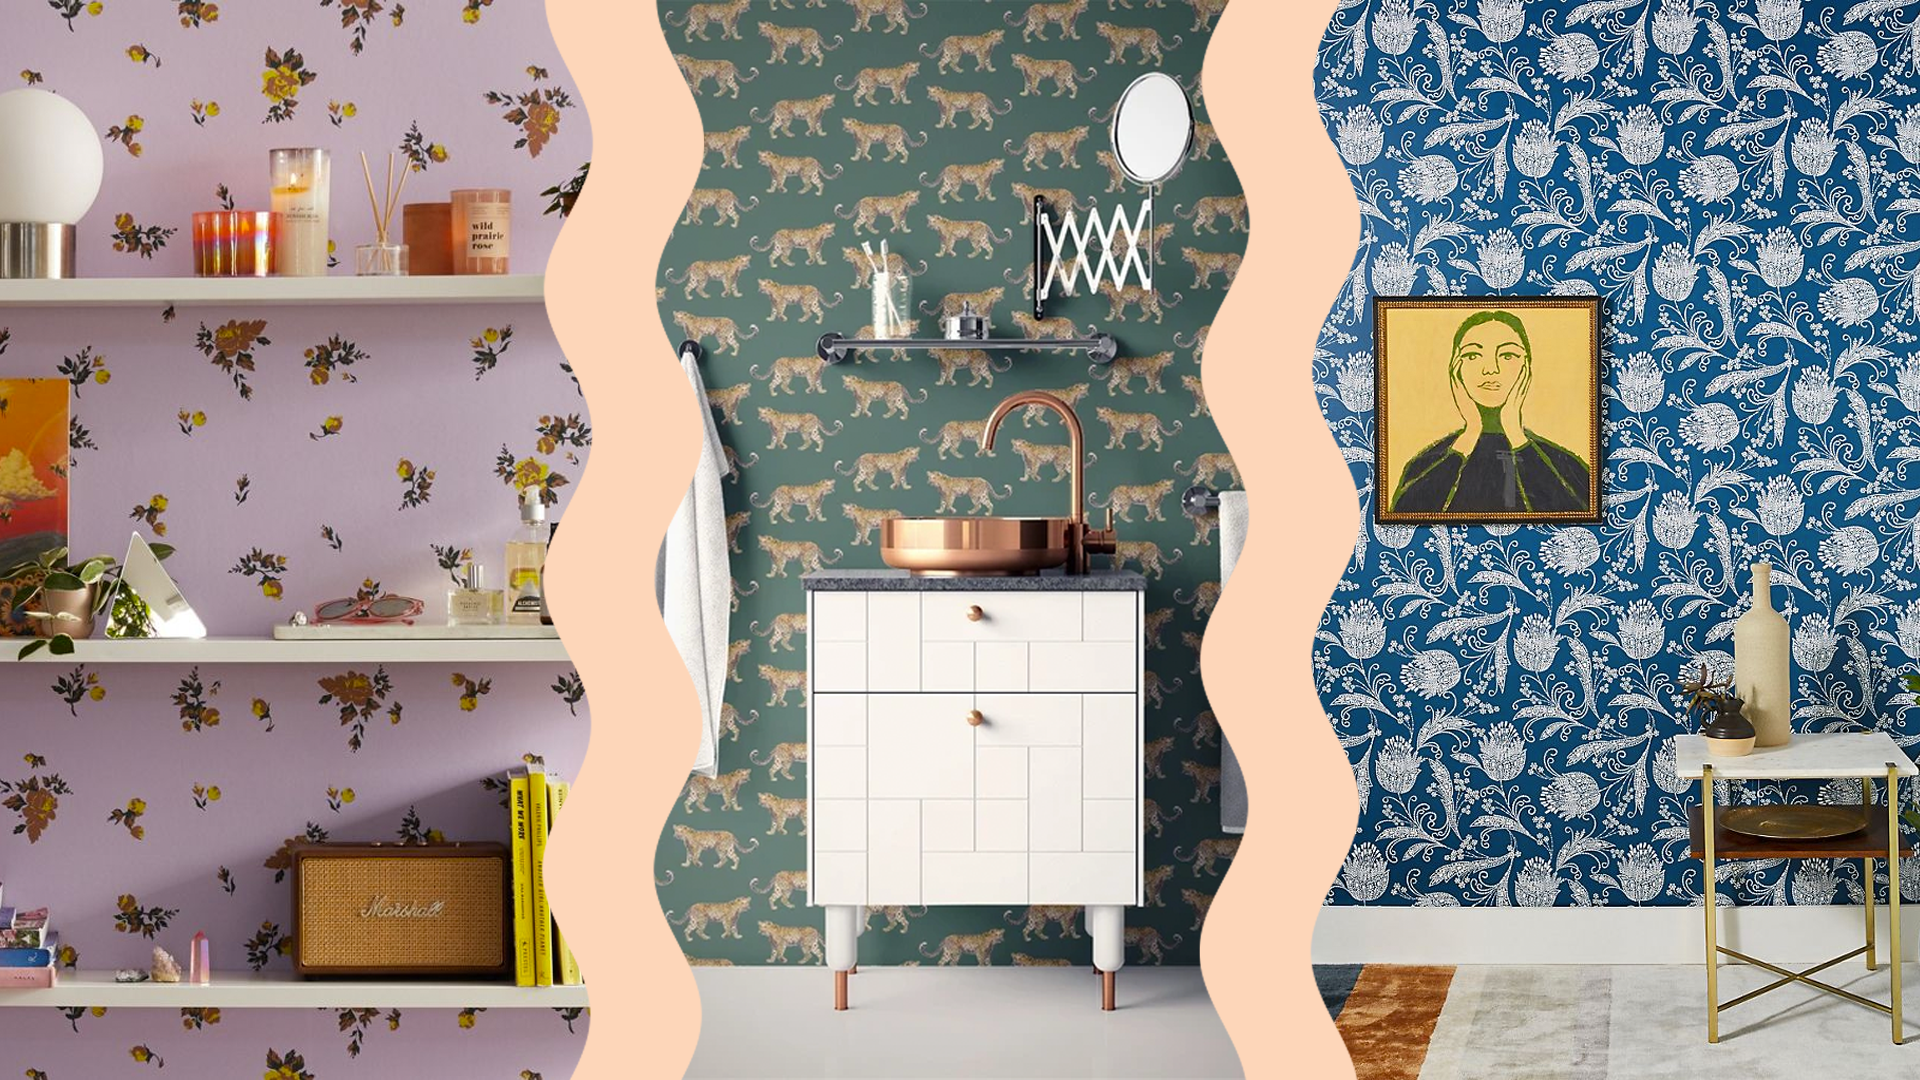 Removable Wallpapers To Beautify Your Space That Double As Cute Zoom Backgrounds Stylecaster In 2020 Removable Wallpaper Trending Decor Blue Chevron Wallpaper